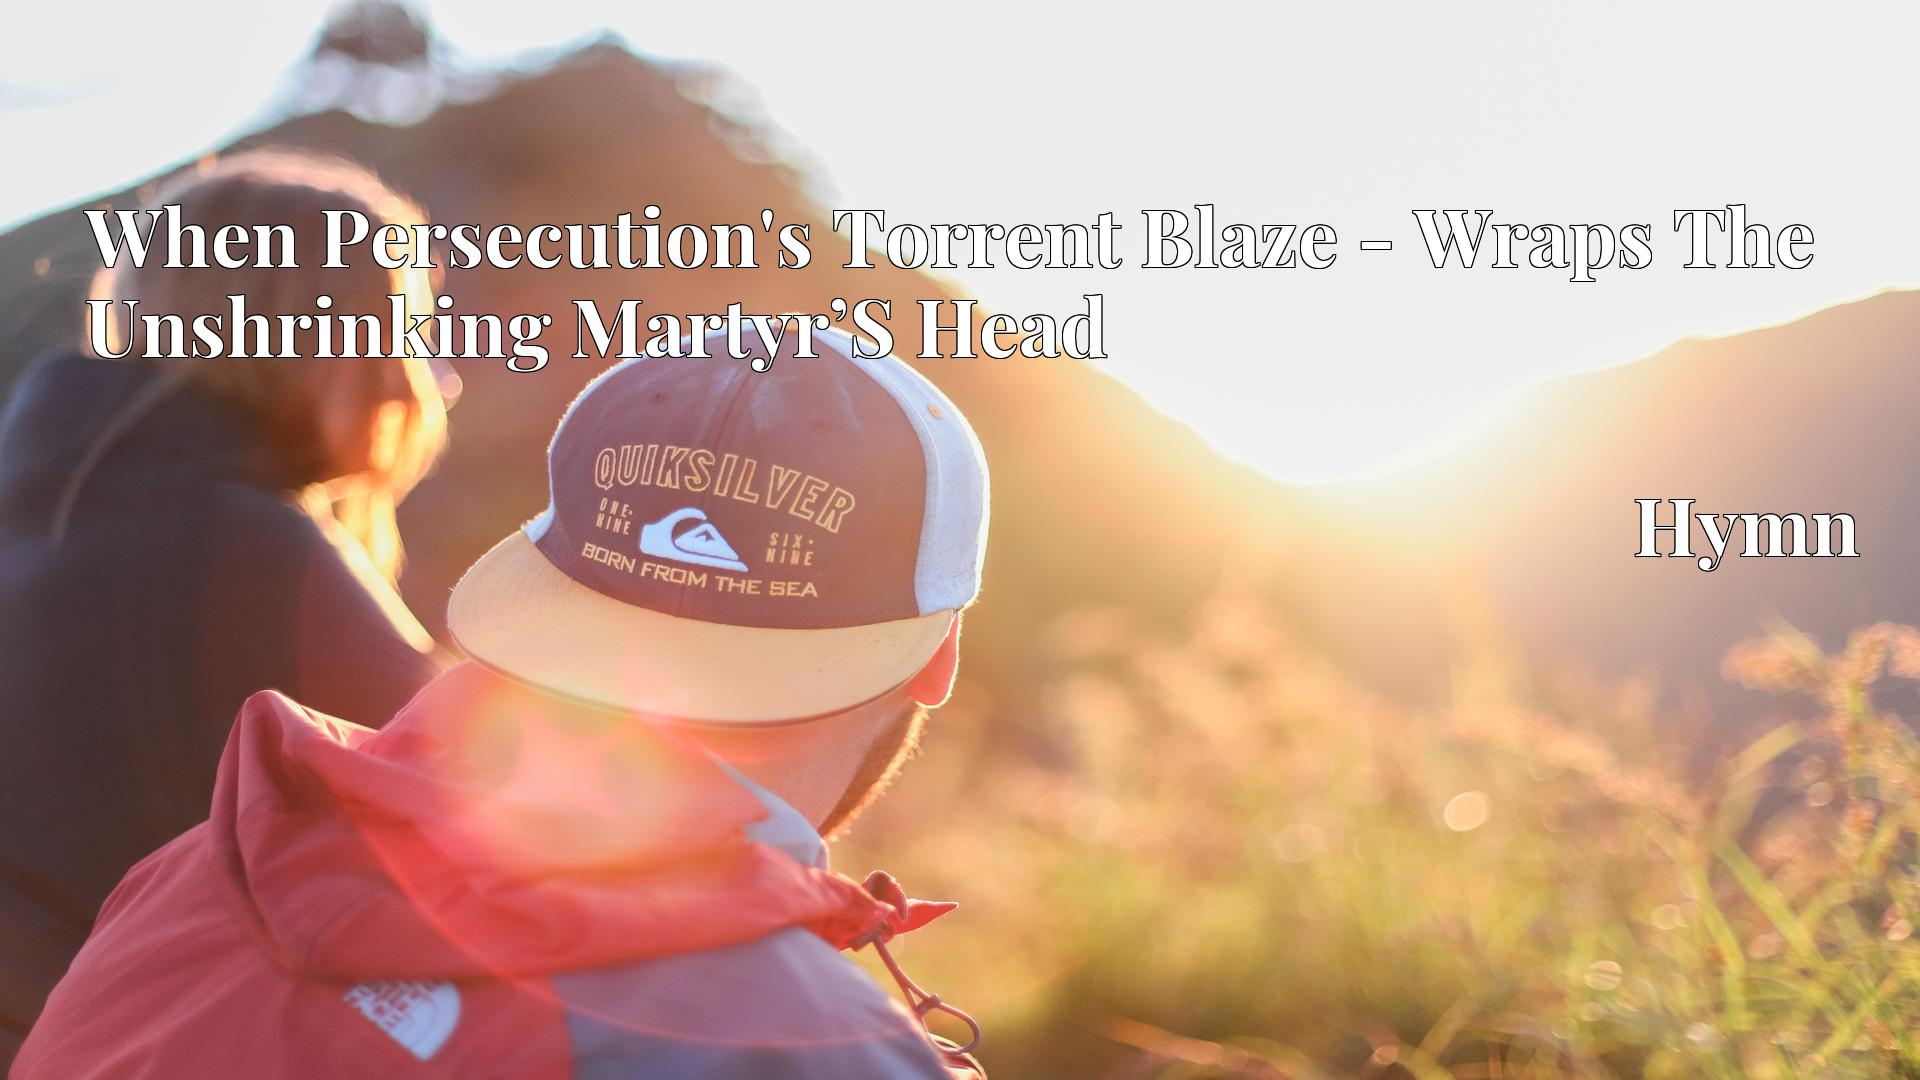 When Persecution's Torrent Blaze - Wraps The Unshrinking Martyr'S Head Hymn